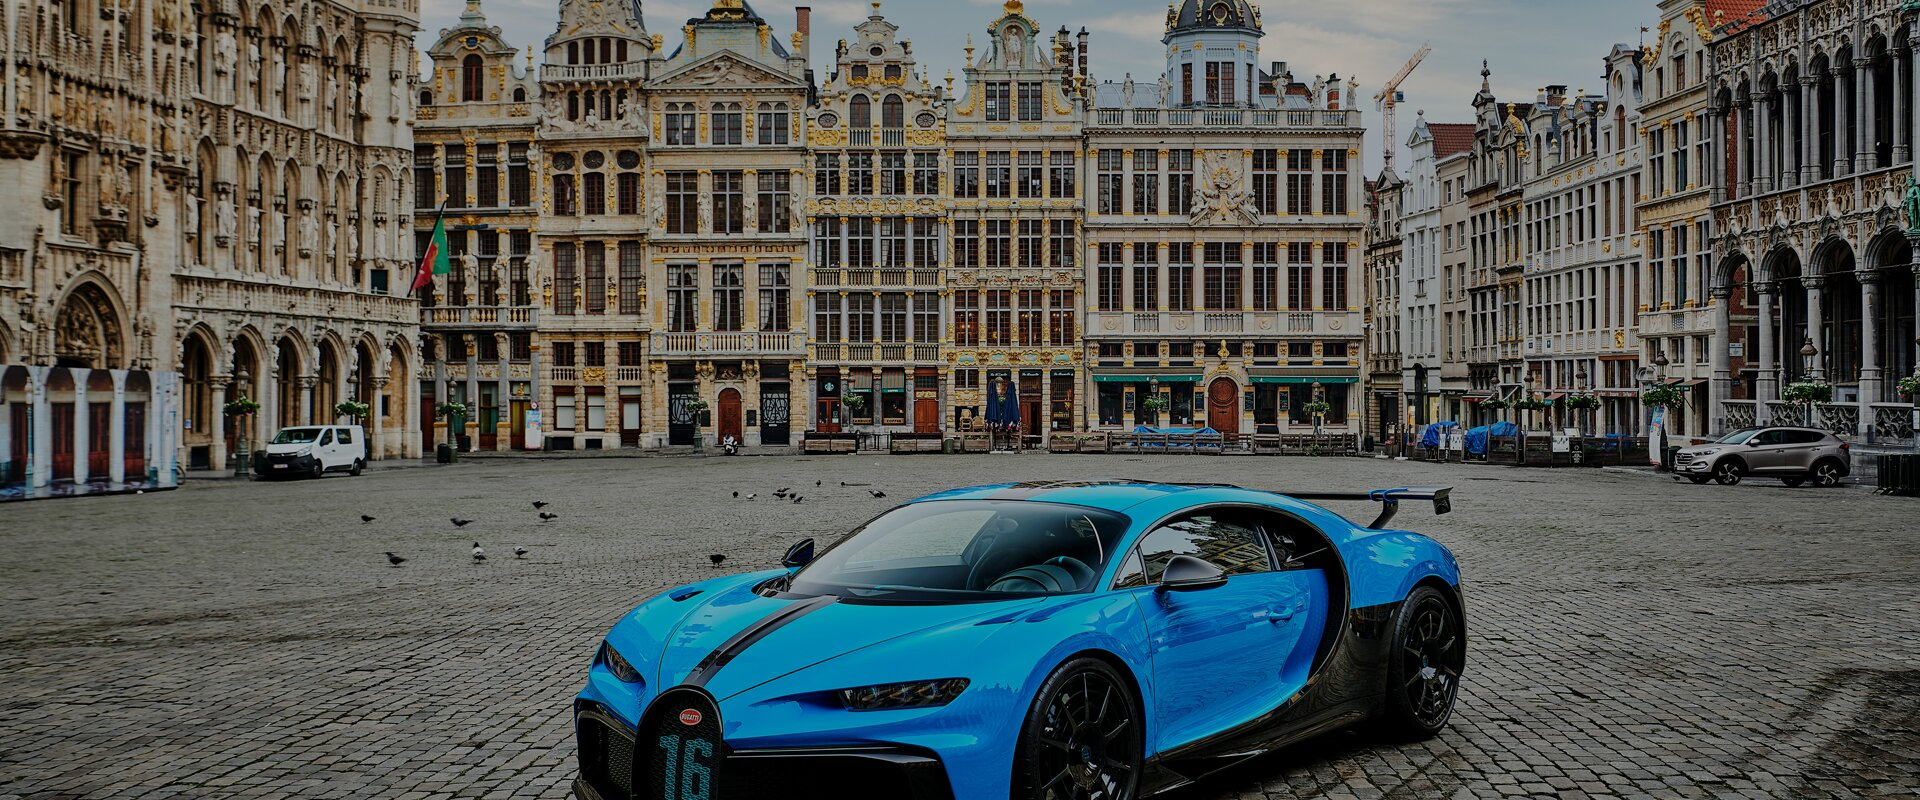 The Chiron Pur Sport in the european capital